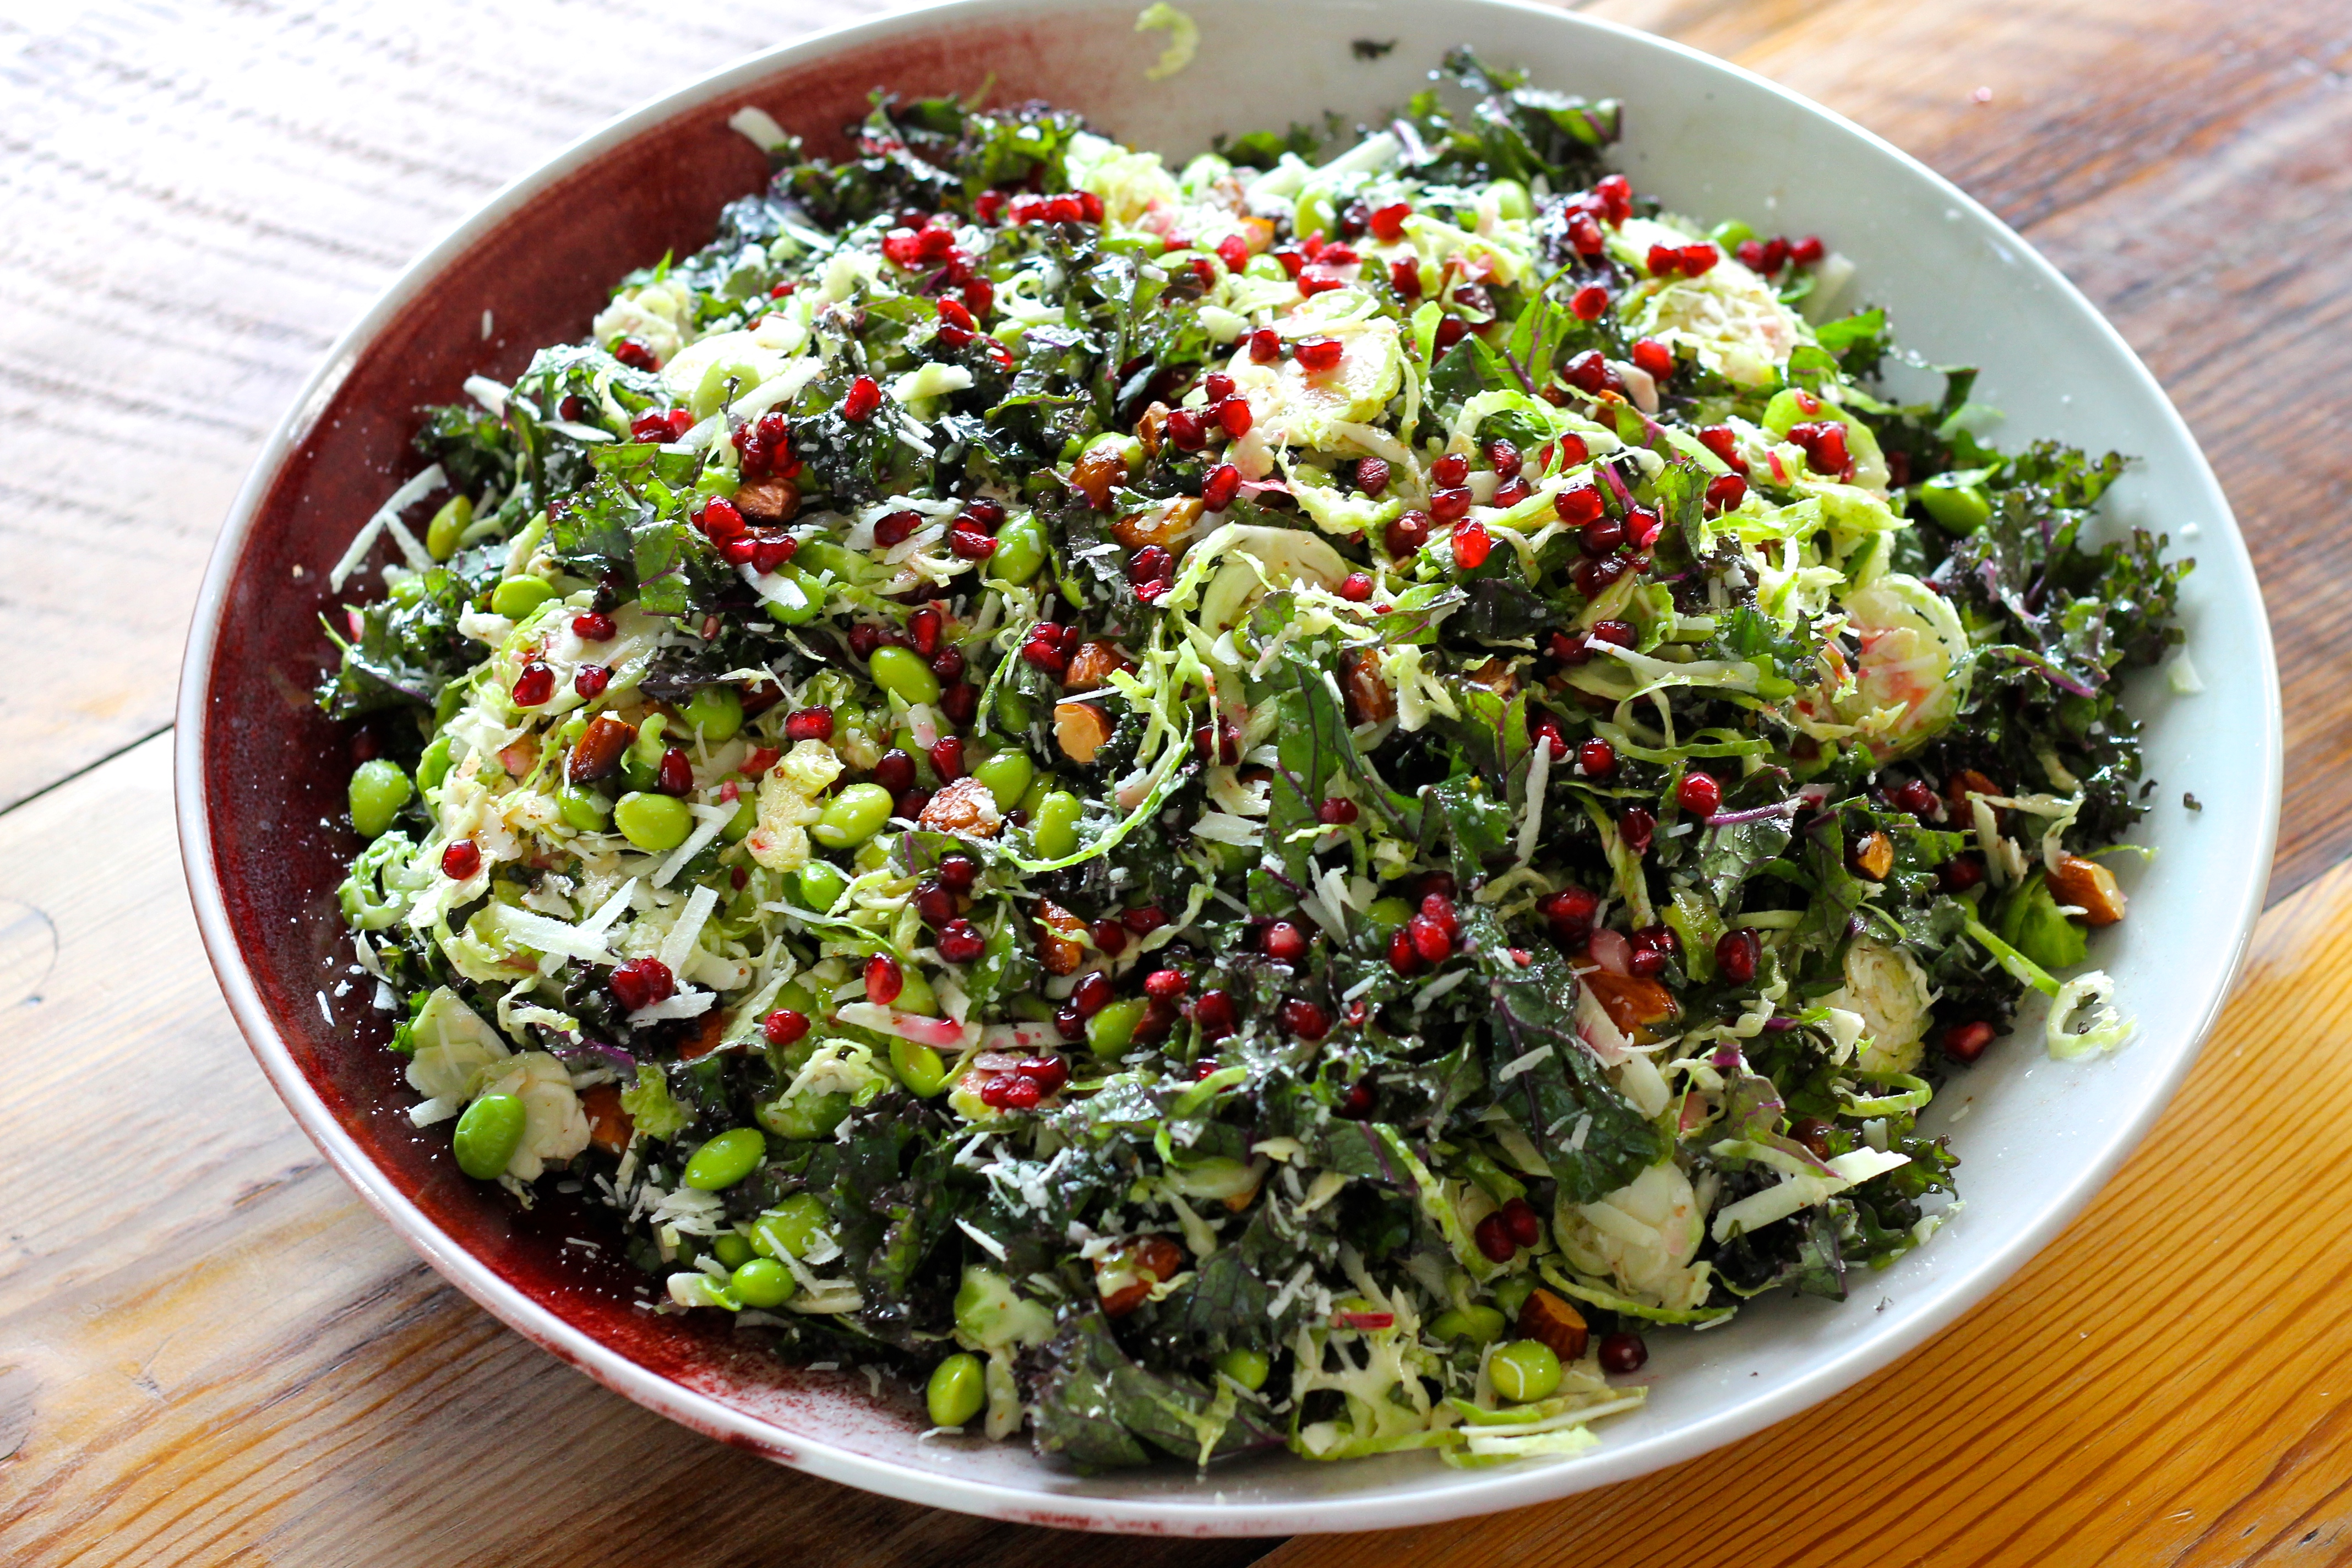 Shredded kale and brussel sprout salad with almonds for Shredded brussel sprout salad recipe